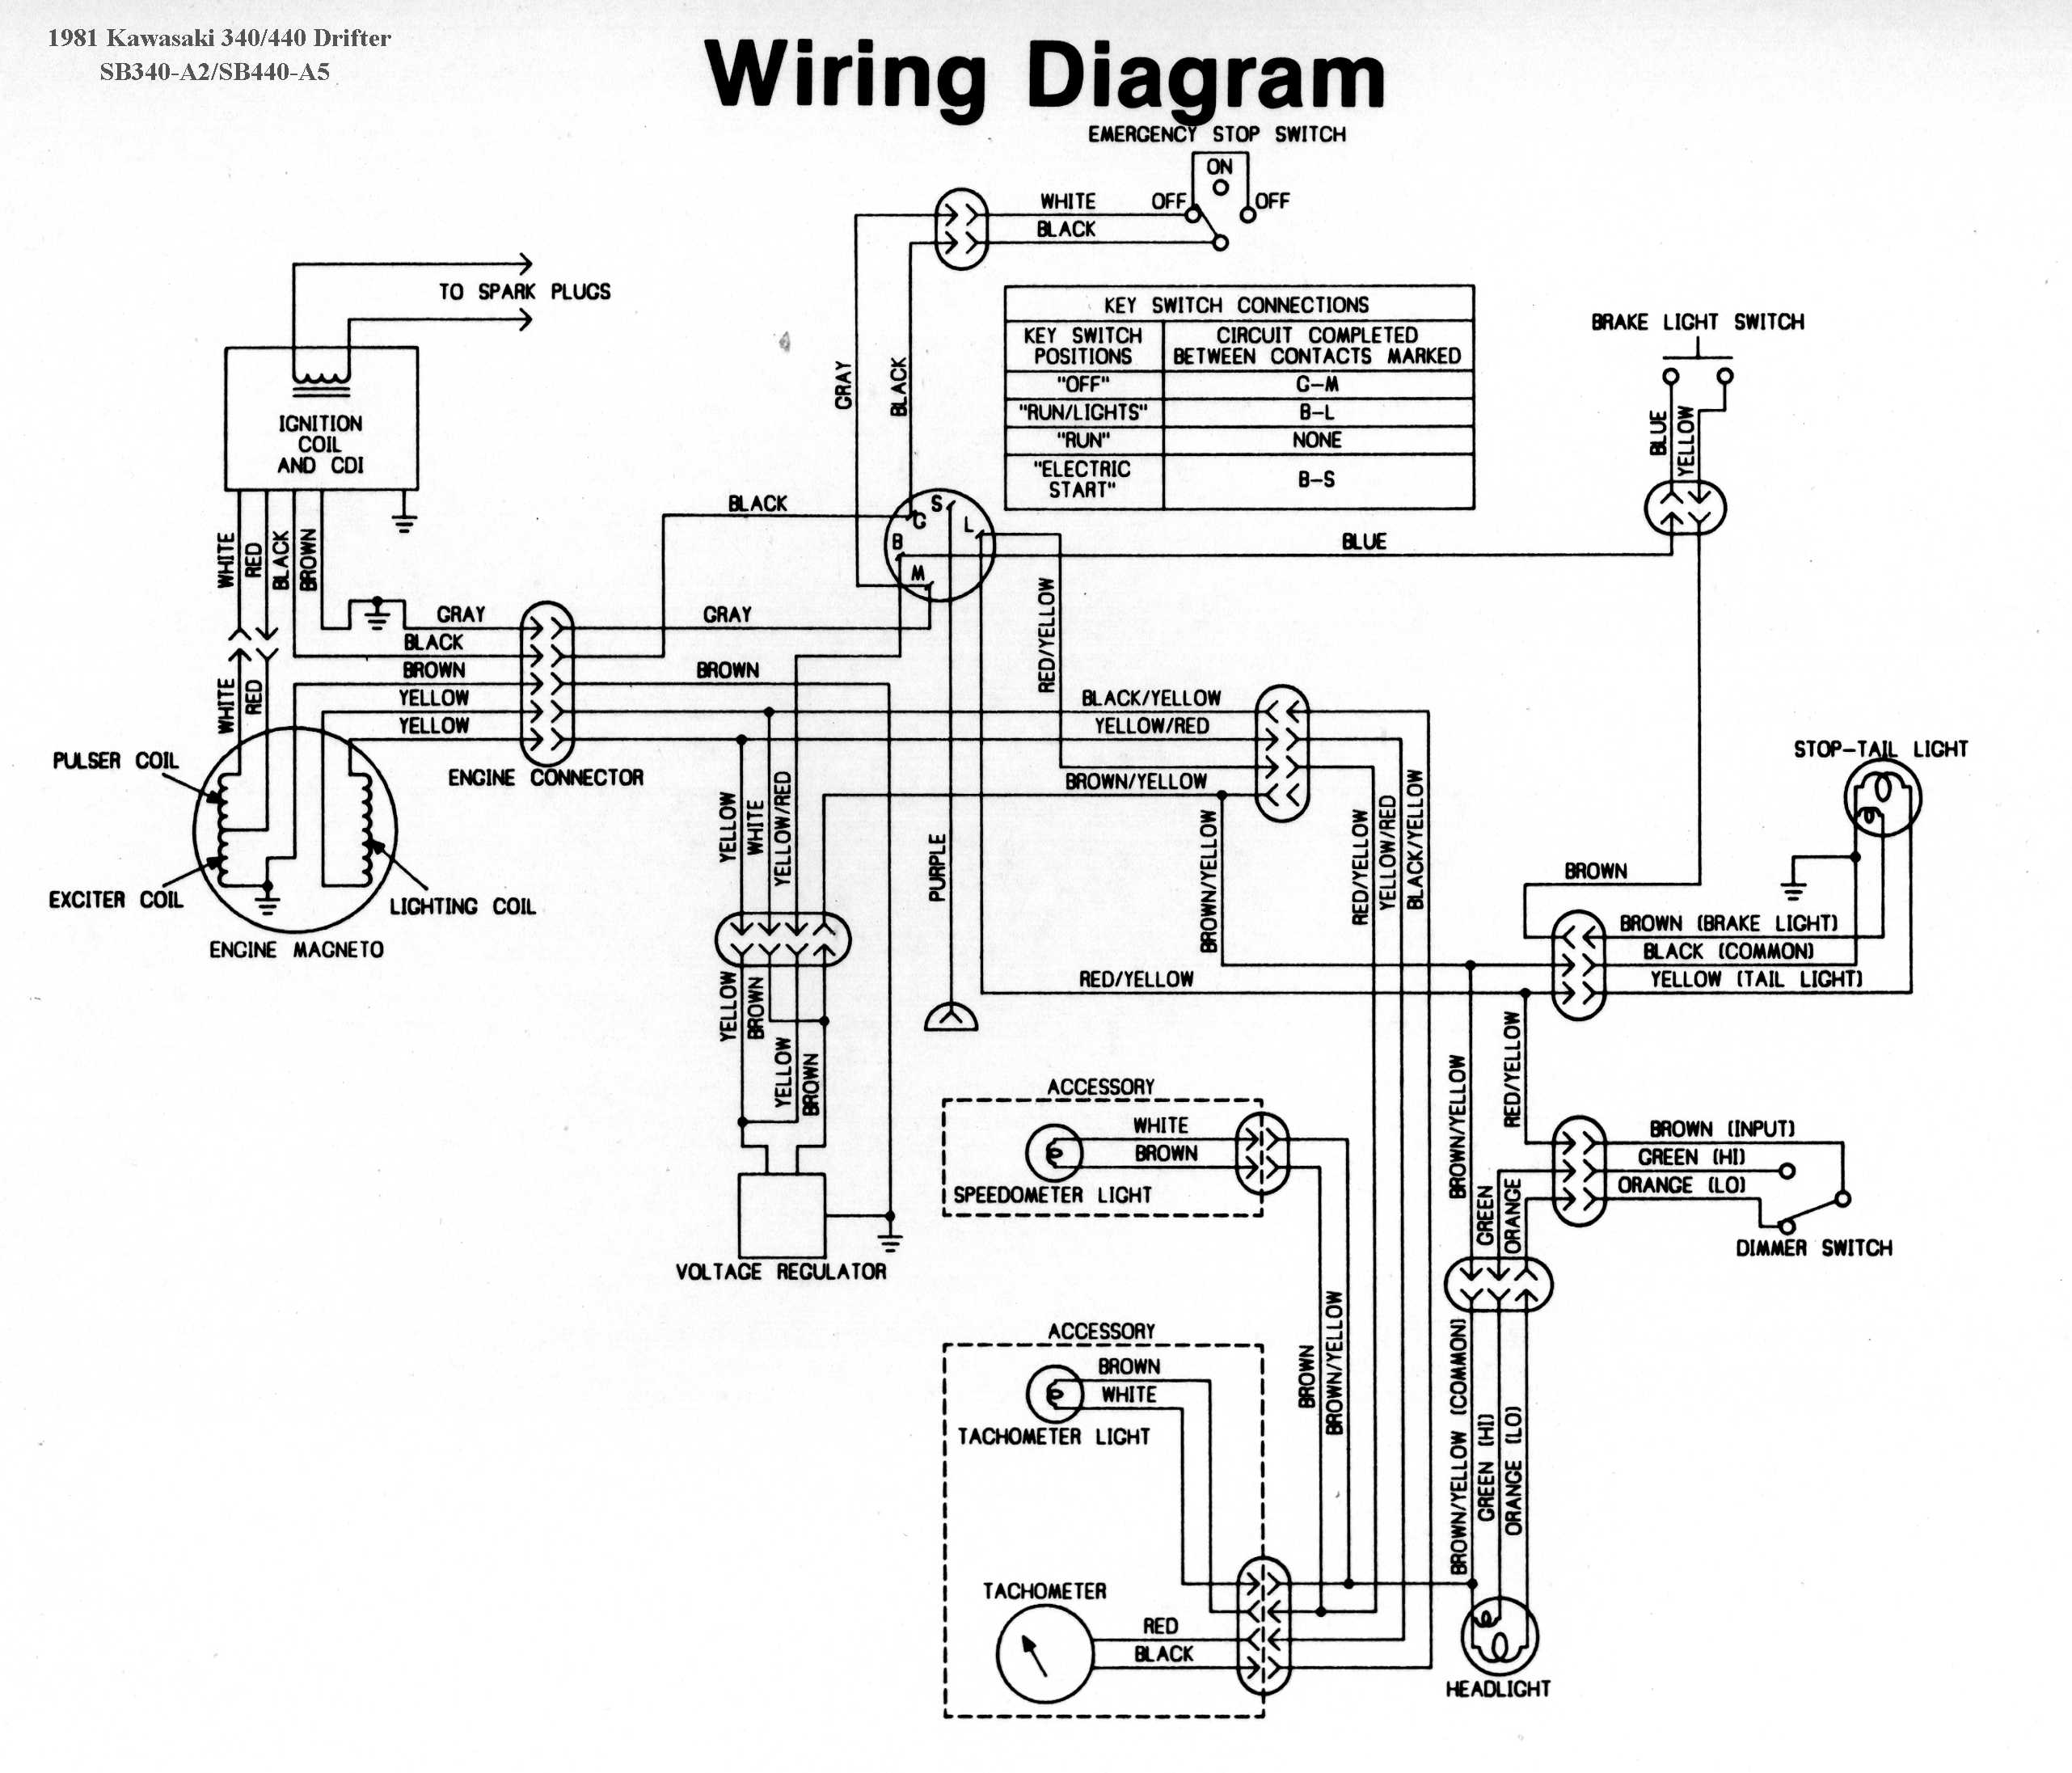 sb340a2 kawasaki 1981 kawasaki 440 ltd wiring diagram at bayanpartner.co